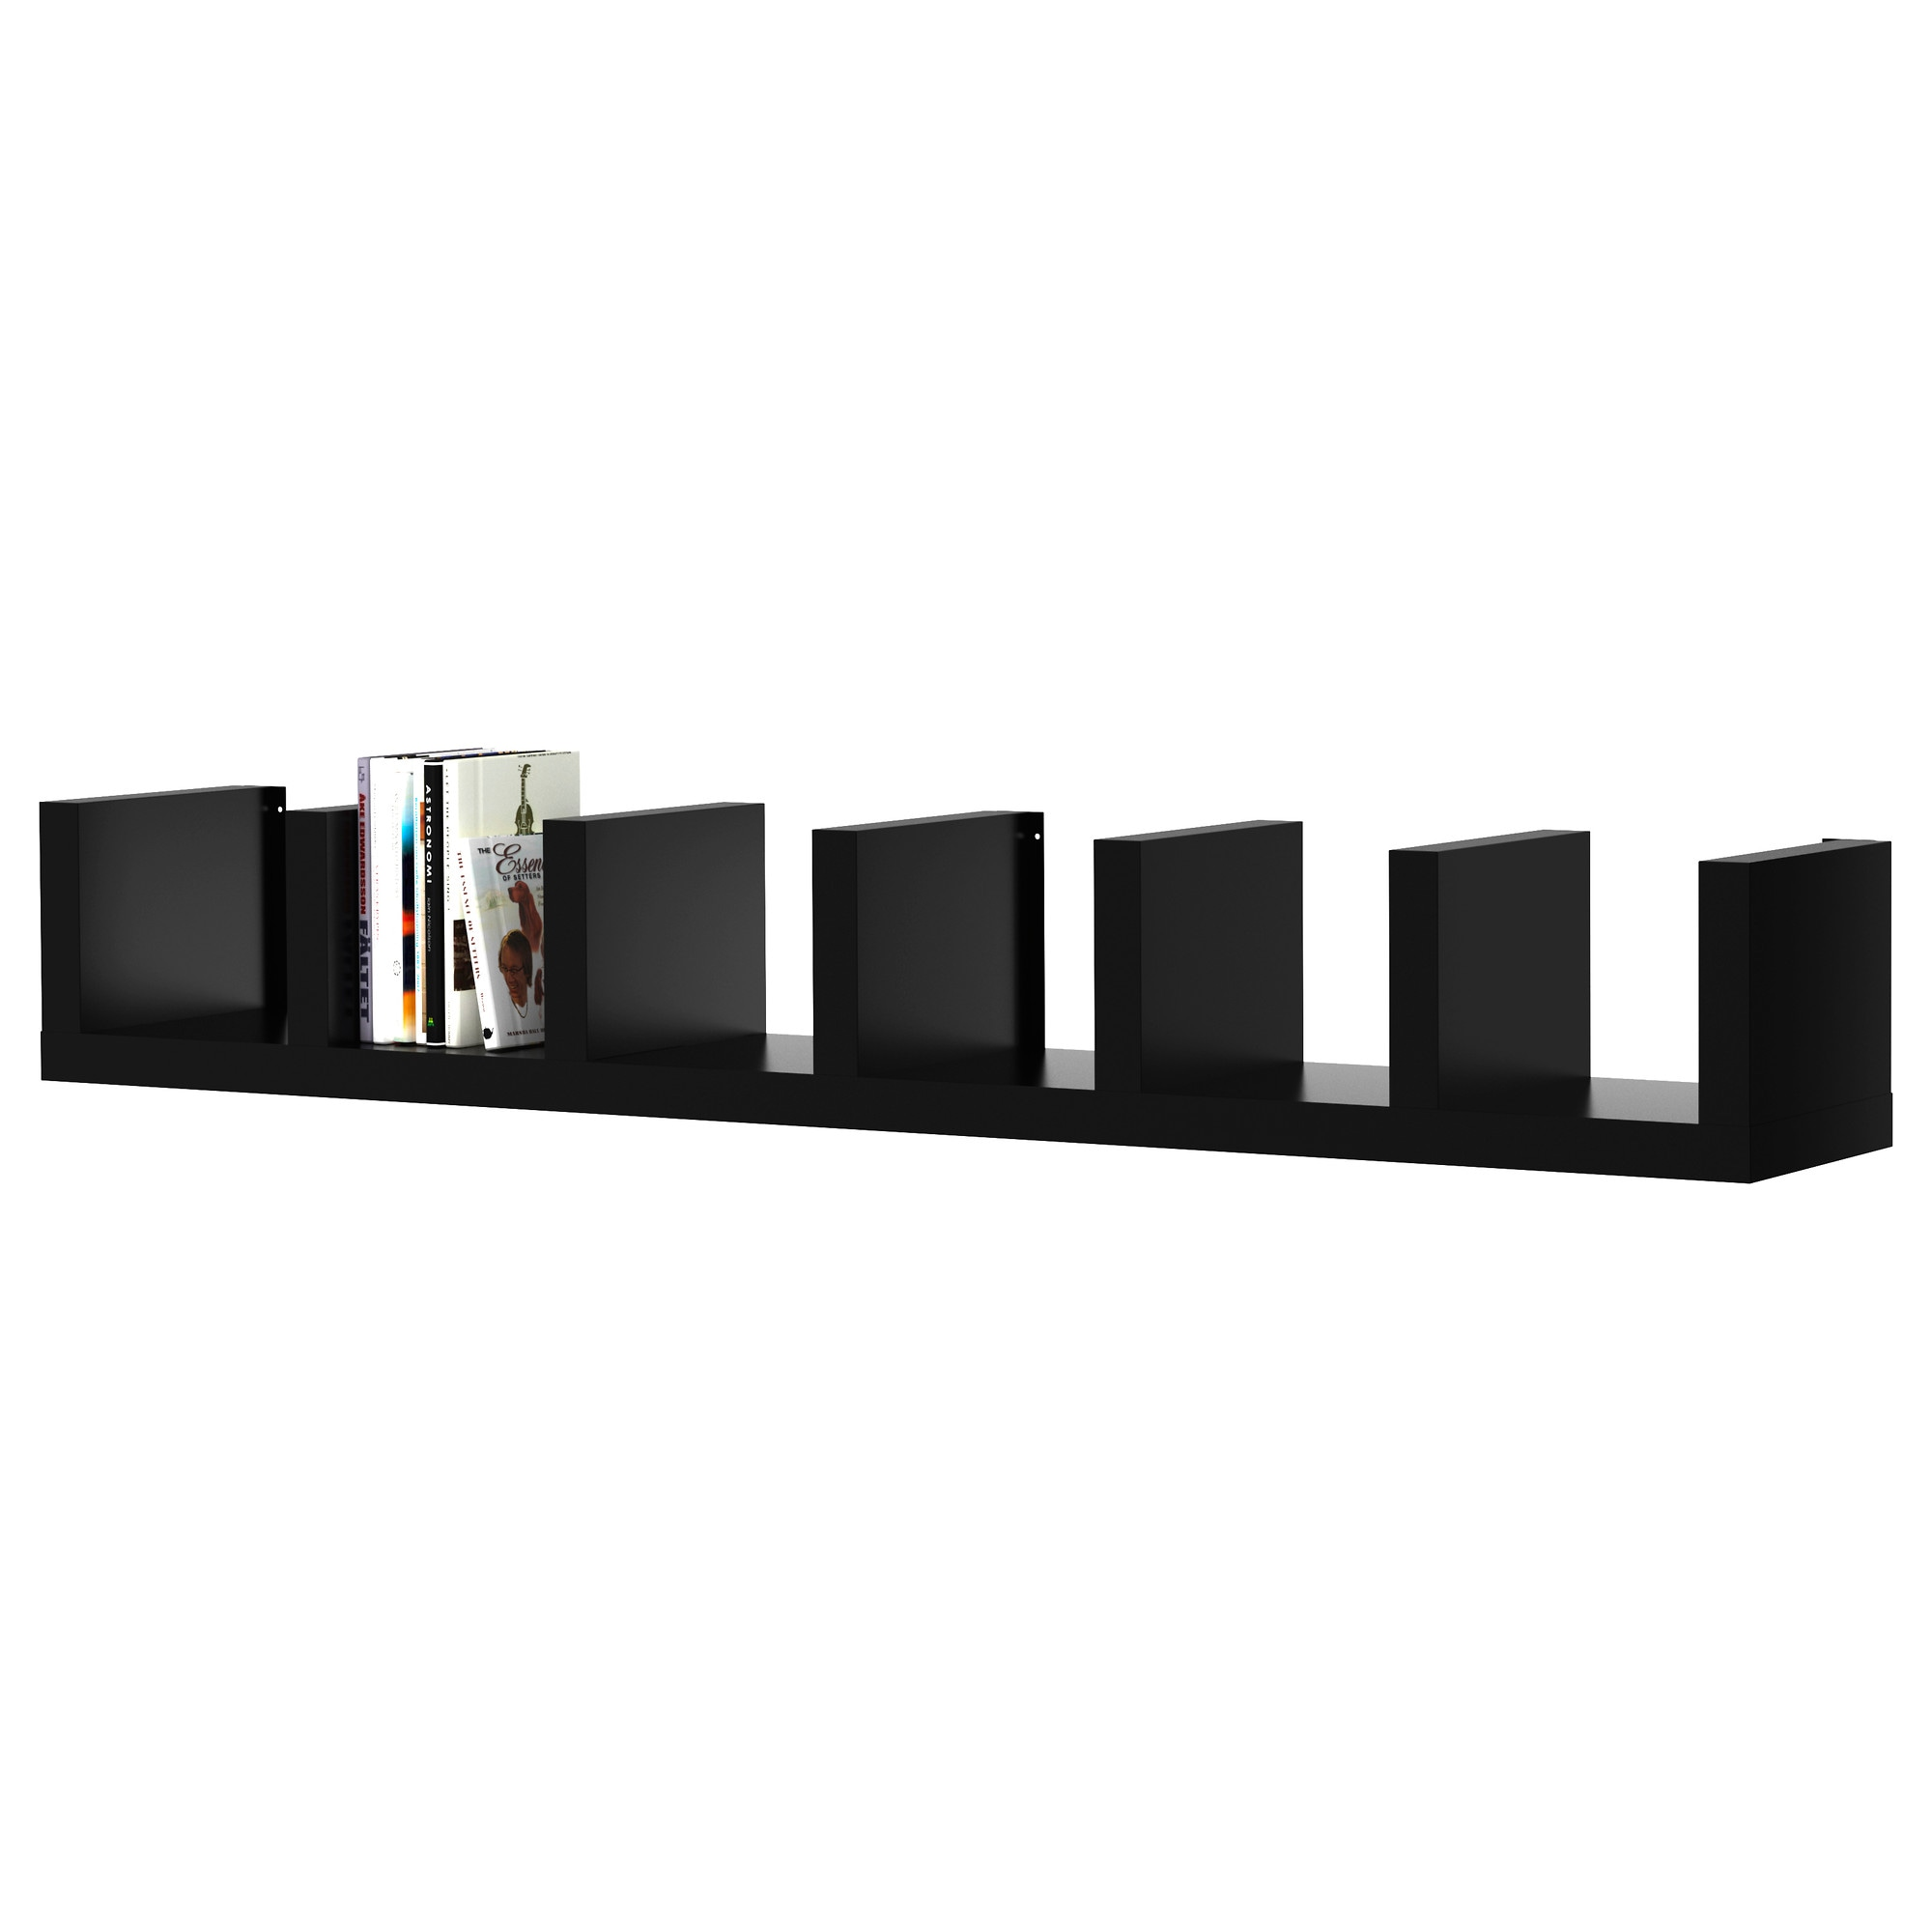 LACK Wall Shelf Unit   White   IKEA Photo